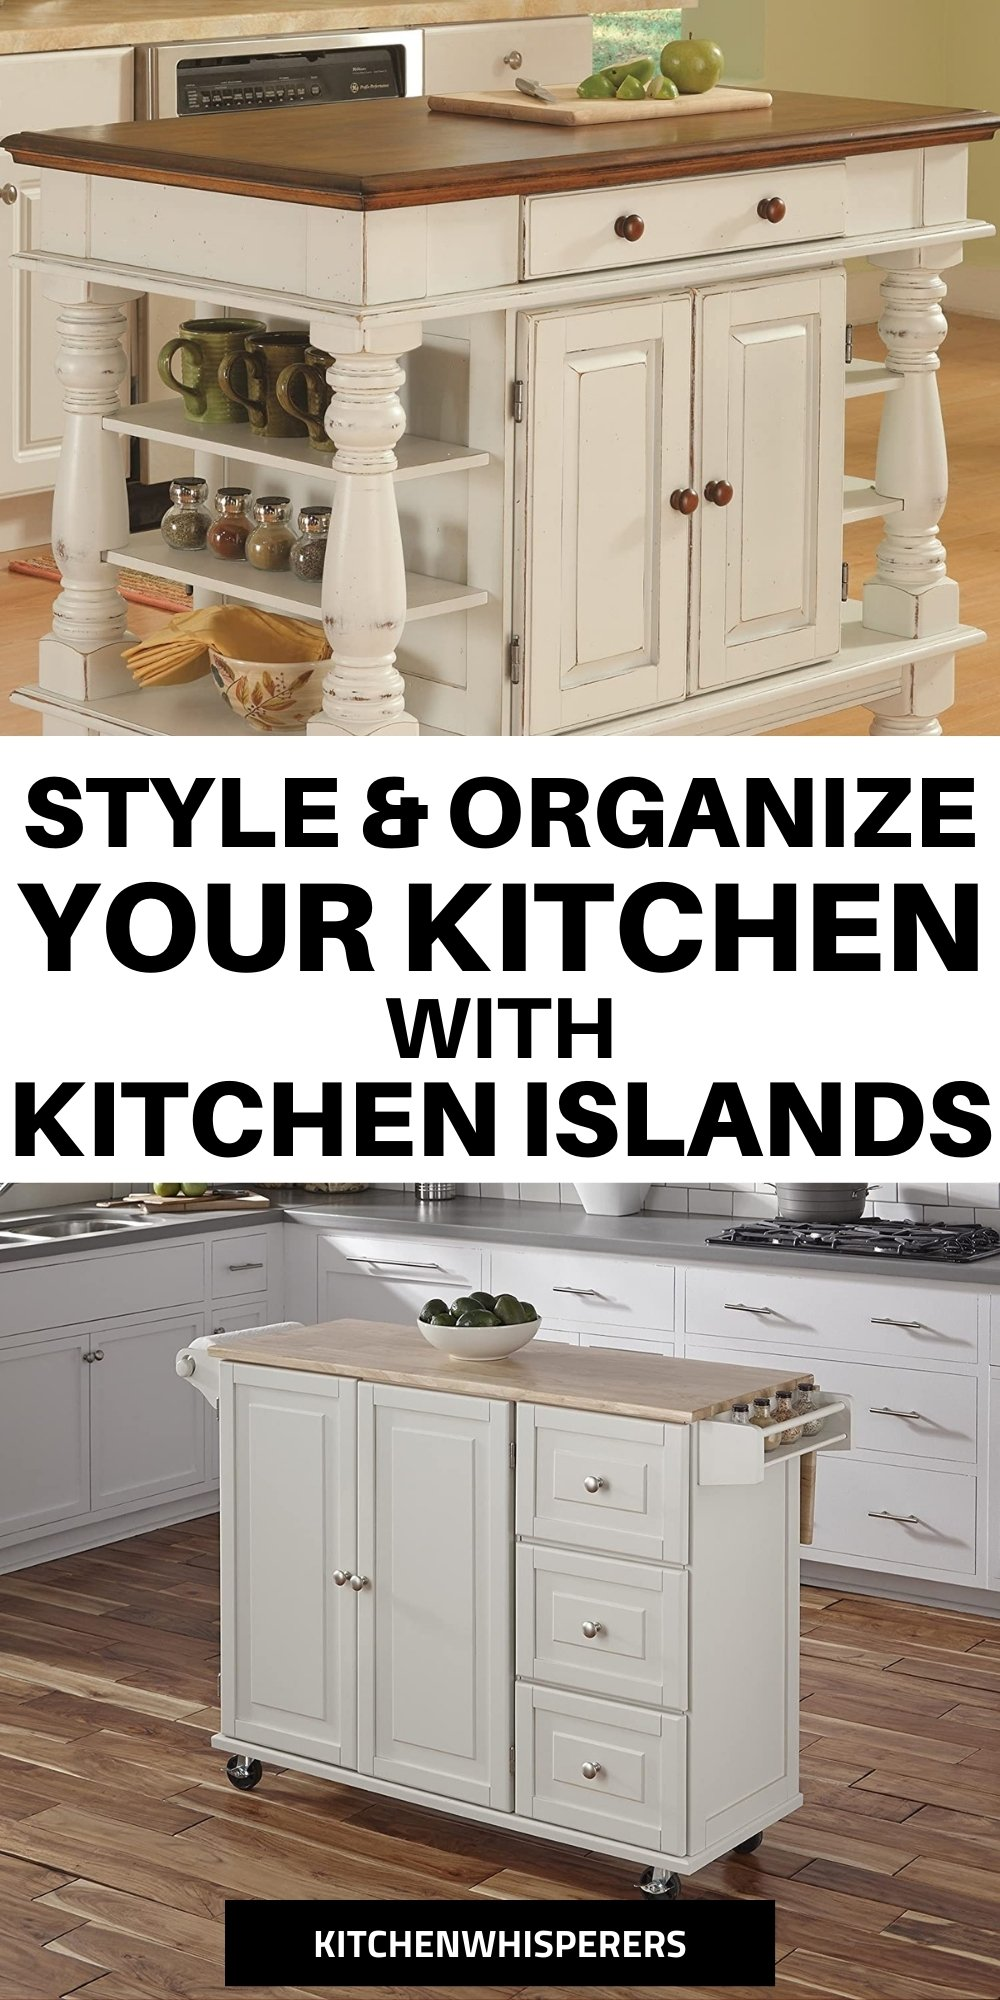 Styling Small Kitchen With Island Designs